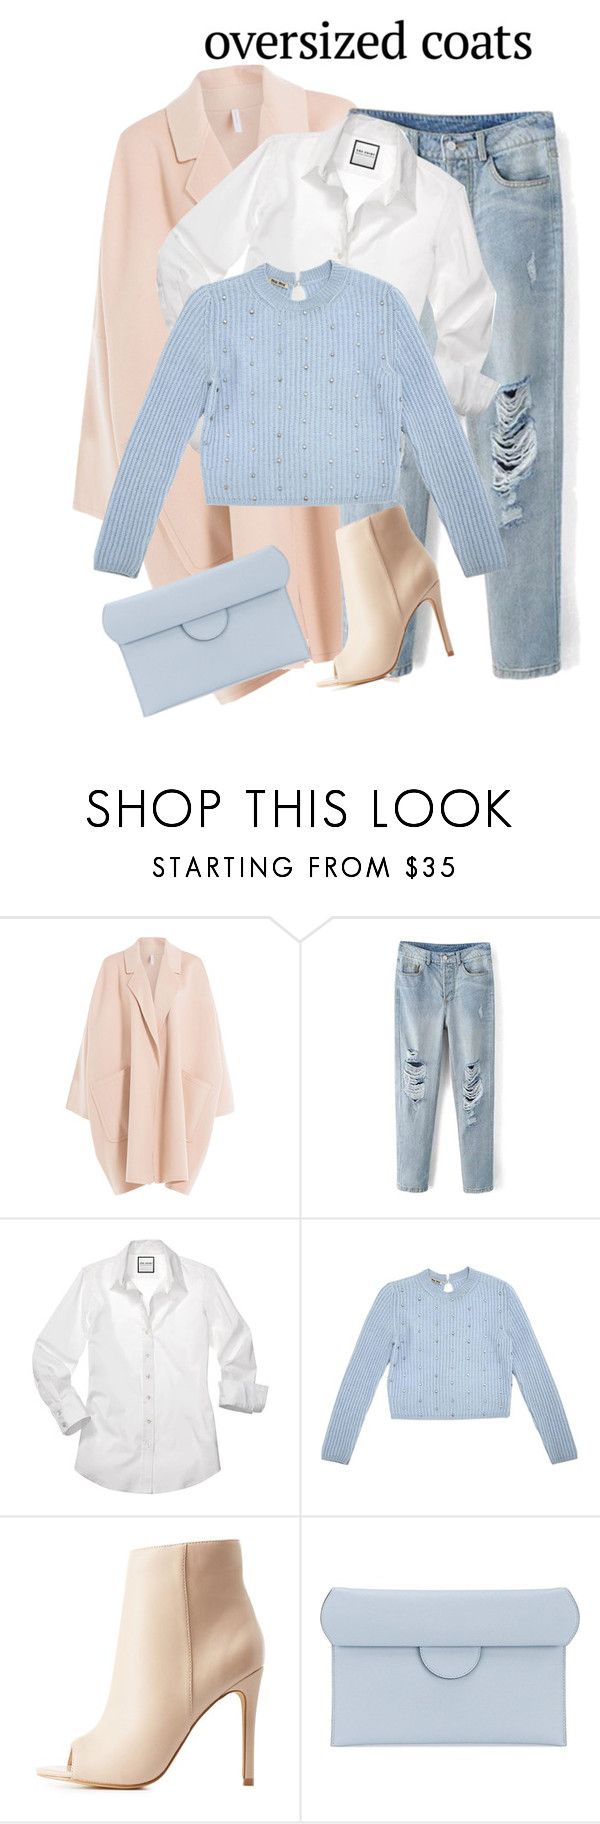 """""""outfit 5892"""" by natalyag ❤ liked on Polyvore featuring Helmut Lang, Miu Miu, Charlotte Russe and Roksanda"""